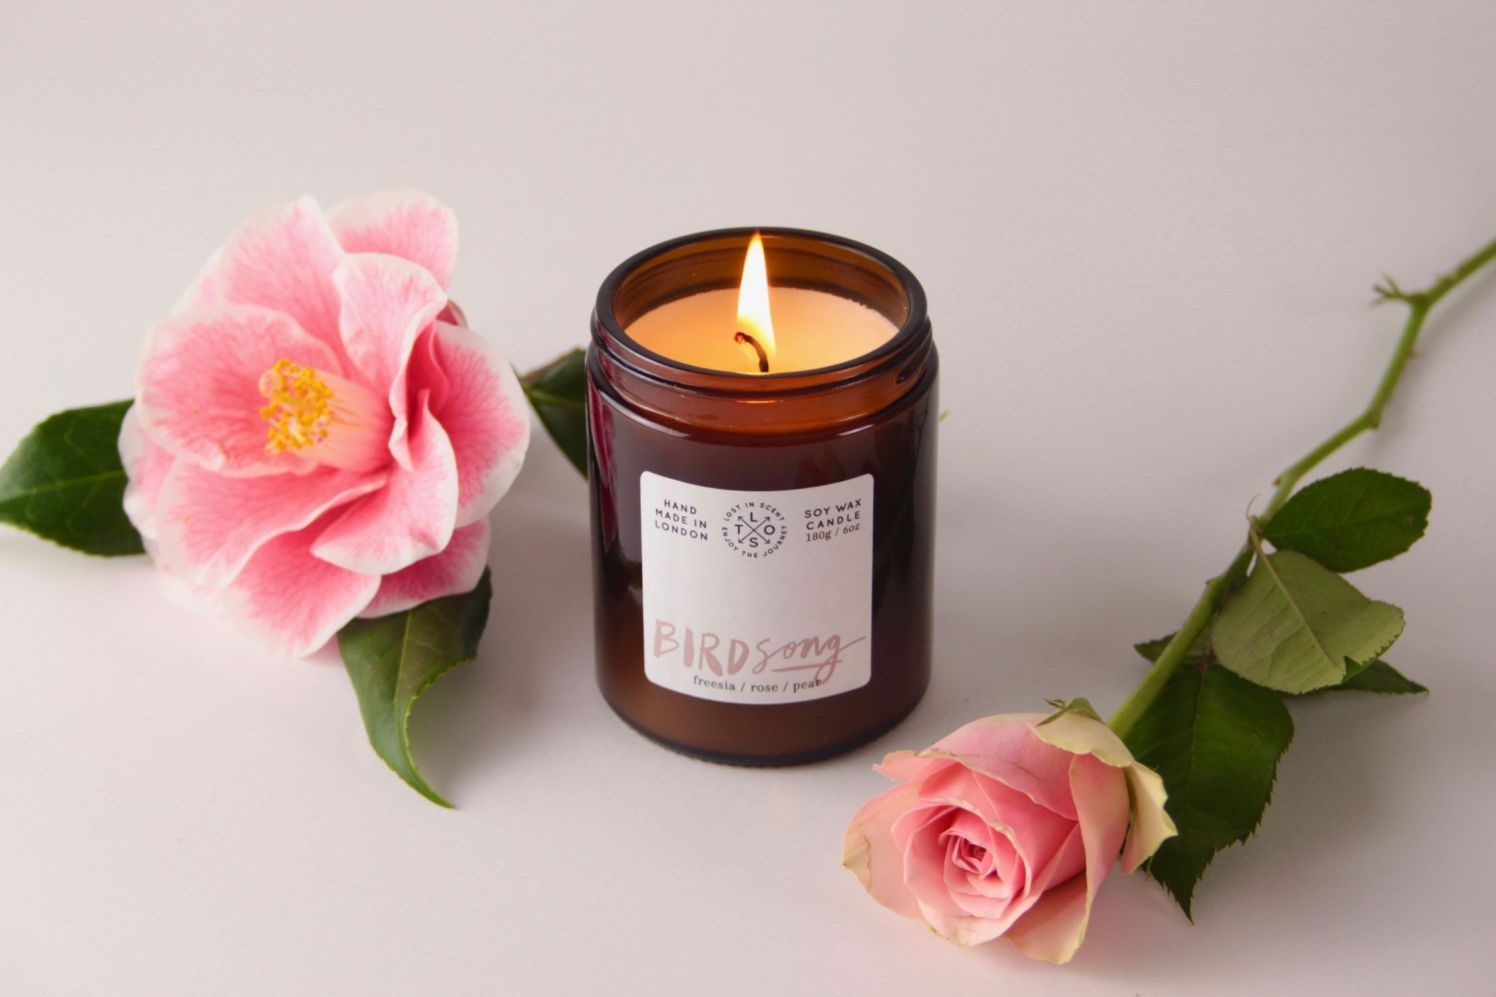 Lost in Scent Birdsong candle_web